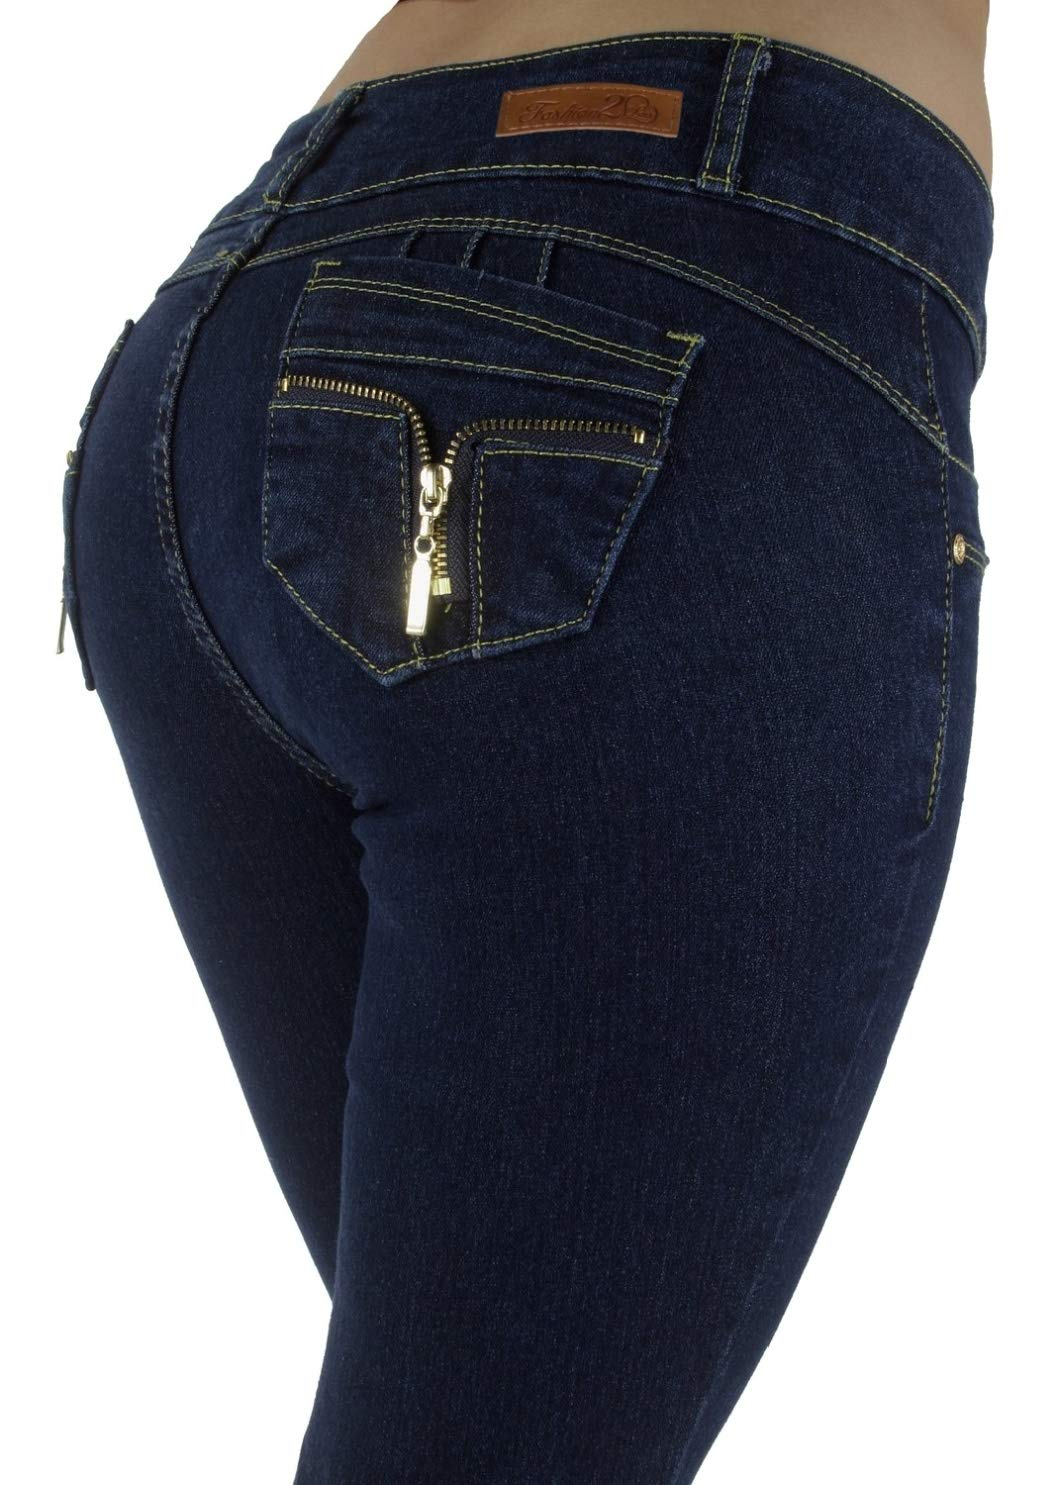 Style M947P - Plus Size, Colombian Design, Mid Waist, Butt Lift, Skinny Jeans in Dark Blue Size 22